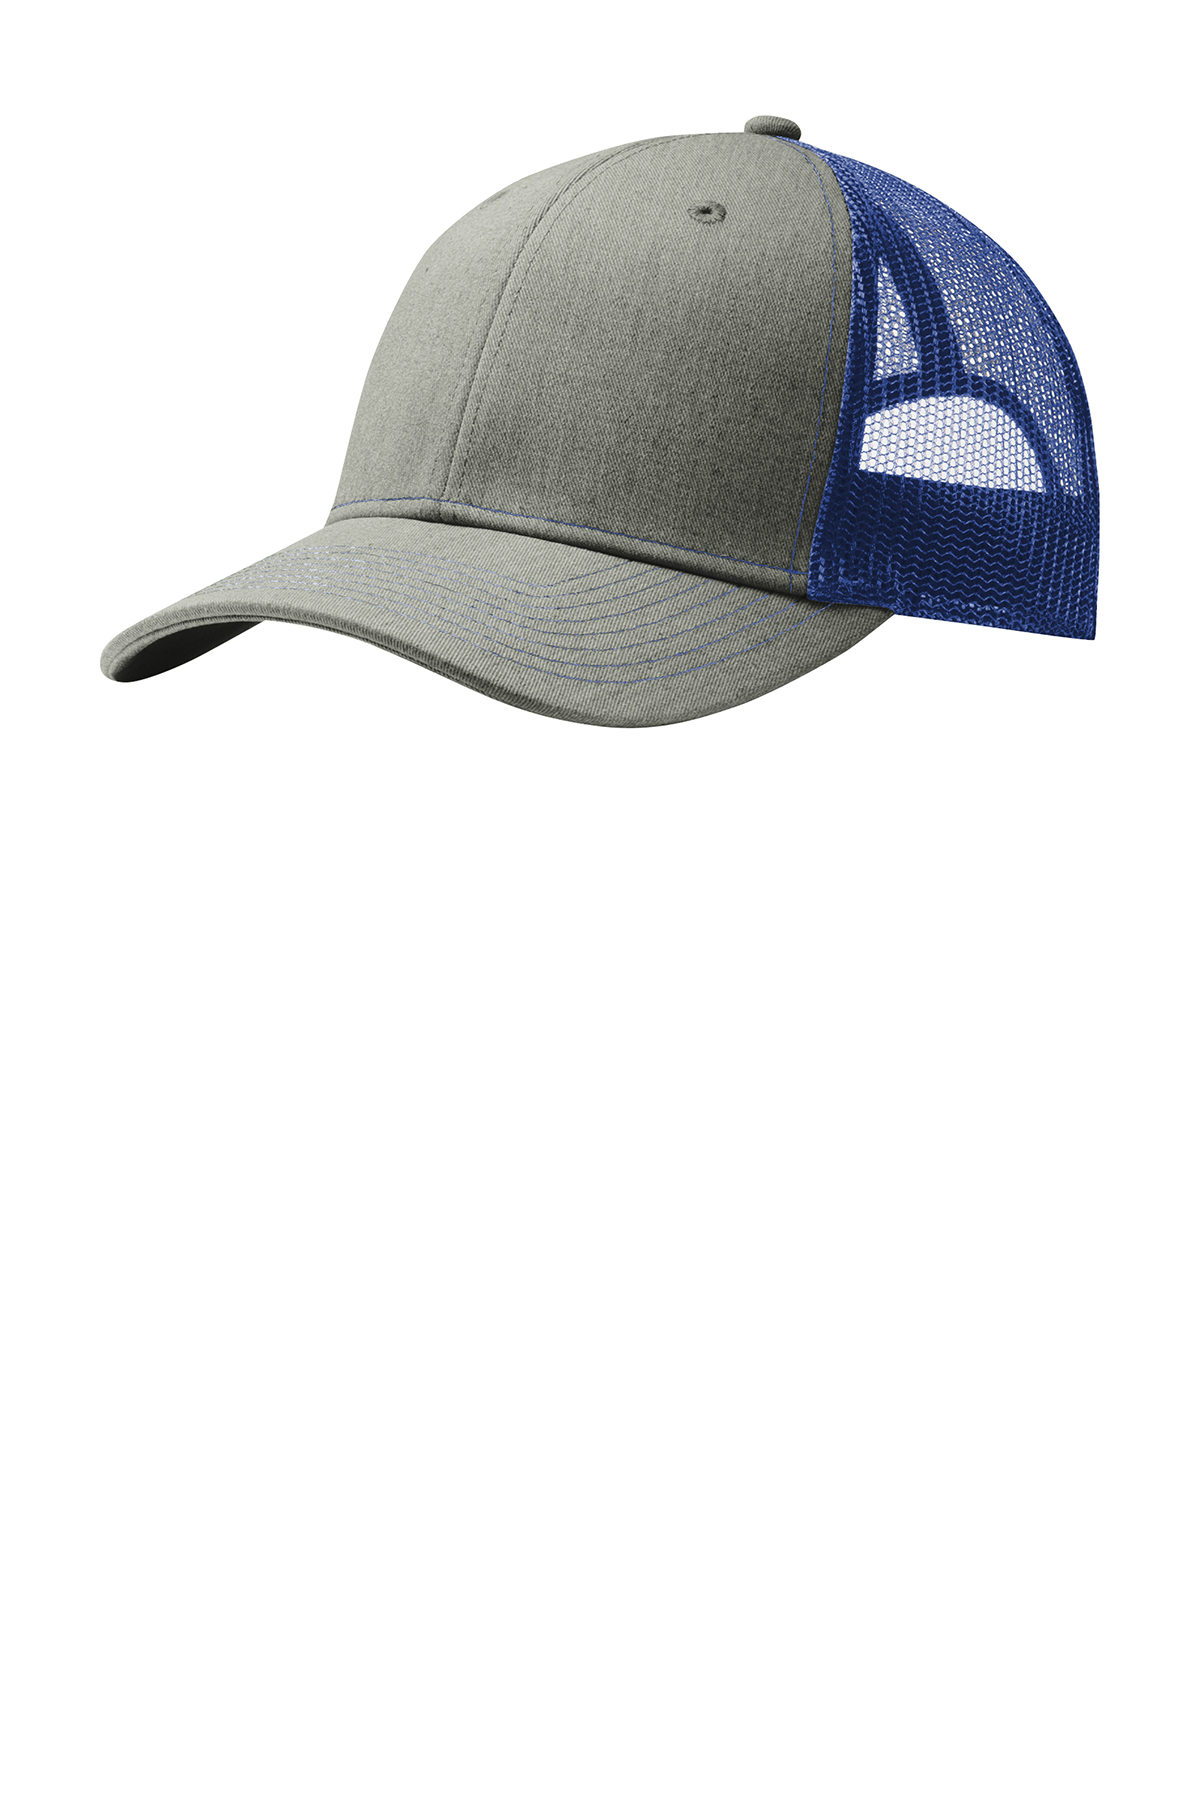 click to view Heather Grey/ Patriot Blue